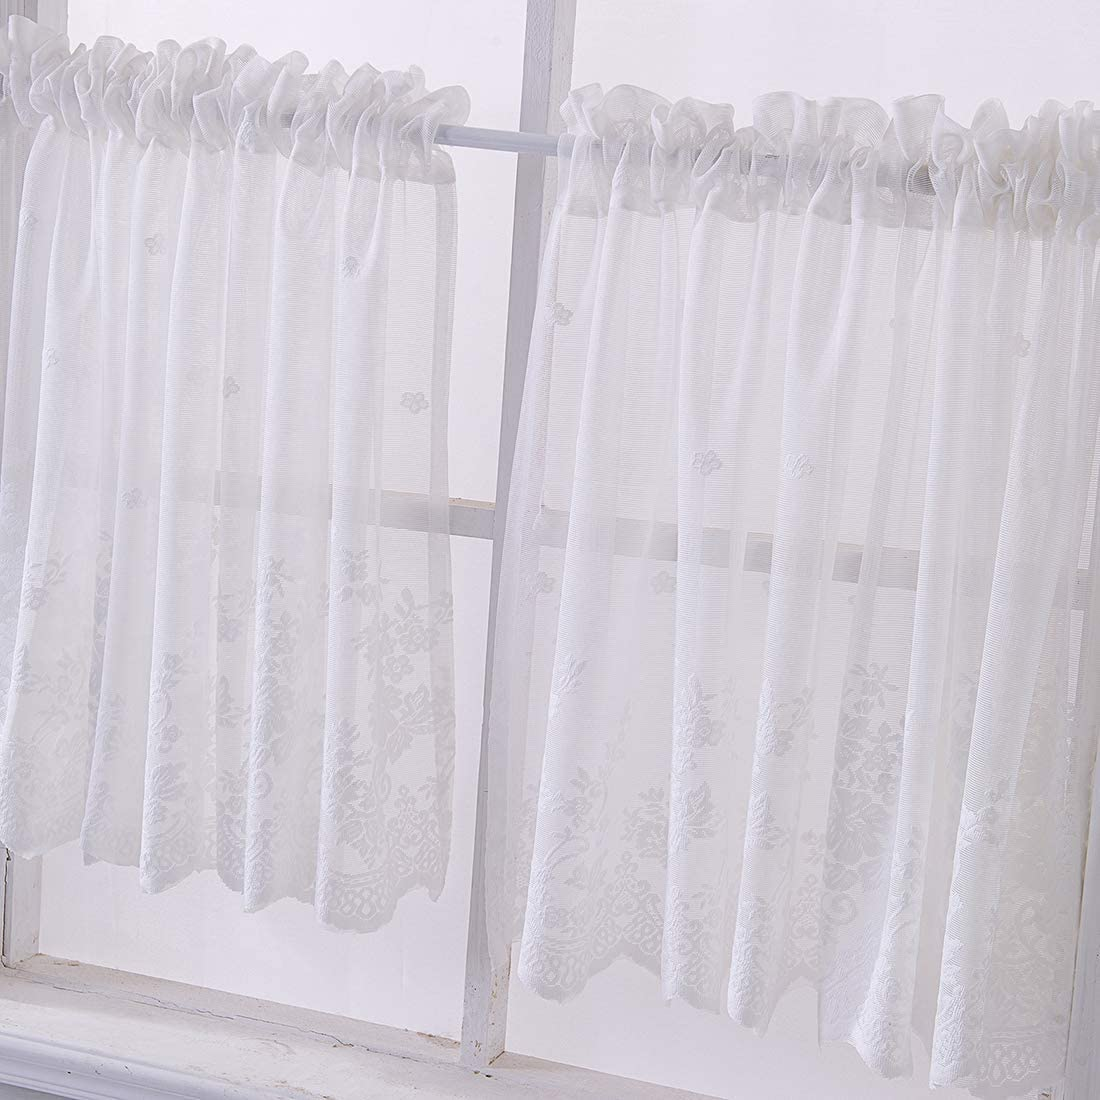 vctops Lace Sheer Kitchen Tier Curtain Set Floral Embroidered Cafe Tiers Rod Pocket Small Half Window Curtains 2 Panels 54 x 35 , White